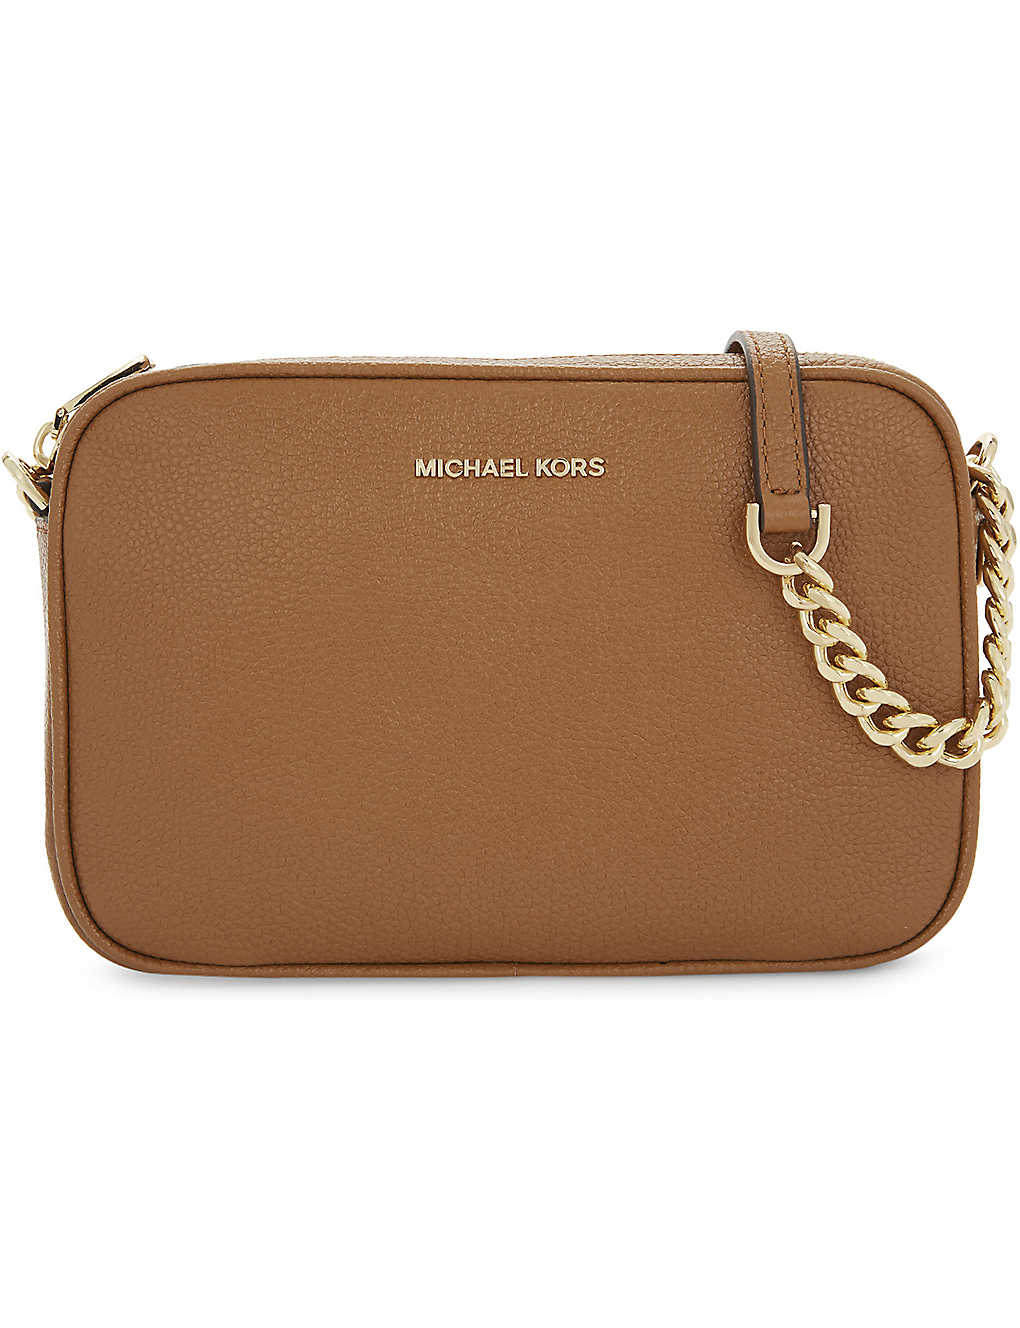 b0d3b249e52e MICHAEL MICHAEL KORS - Ginny leather cross-body bag | Selfridges.com